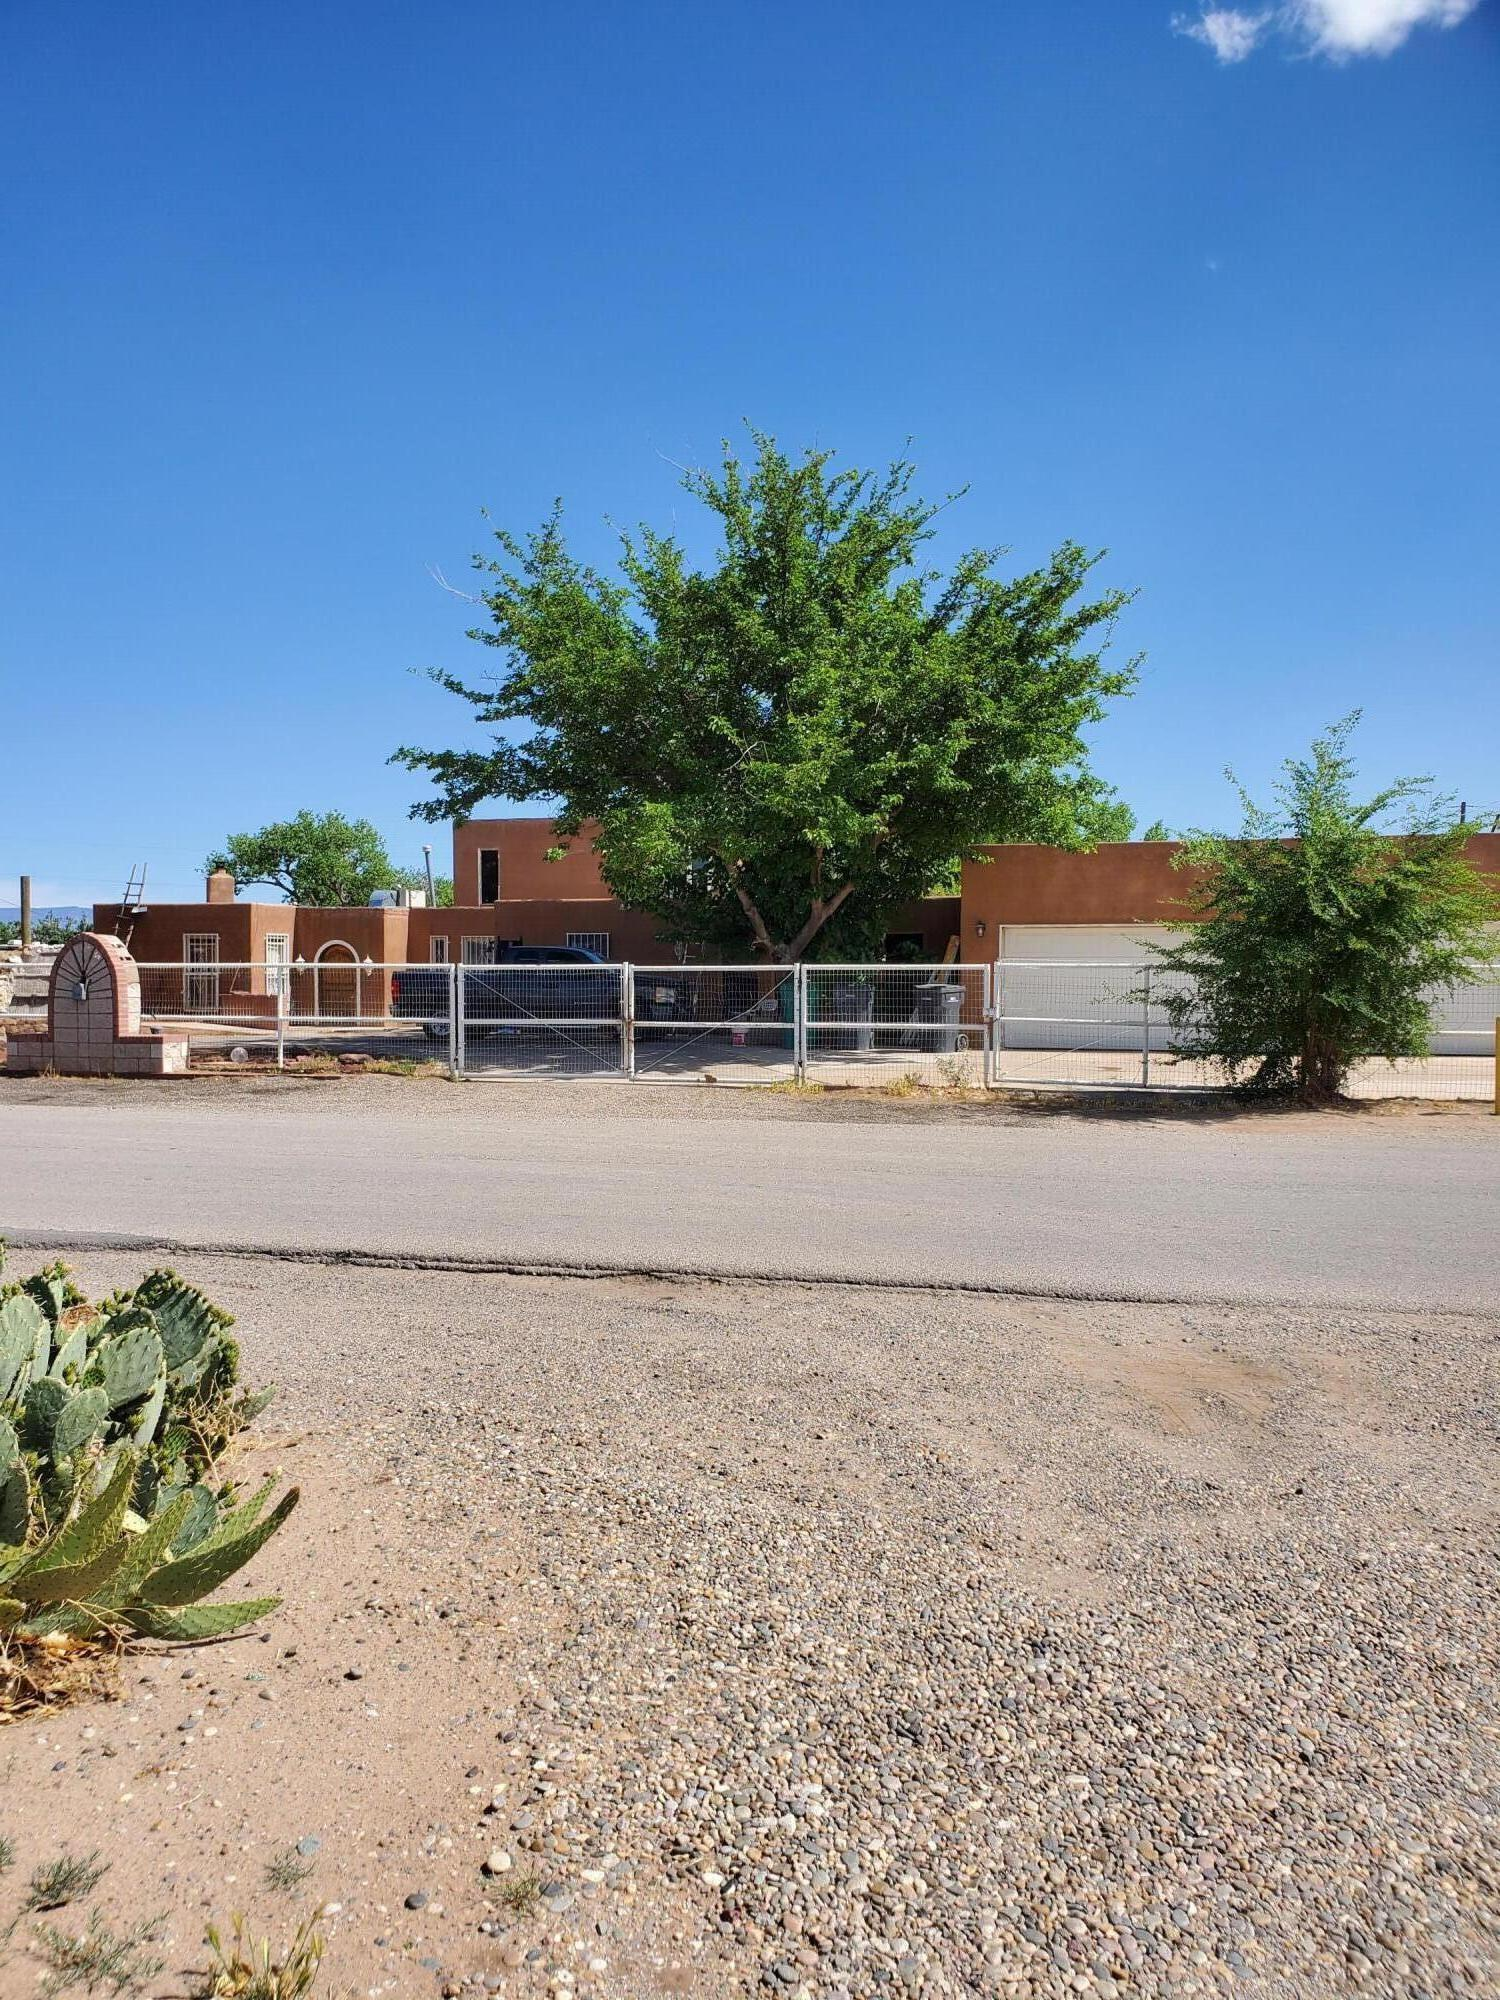 Tons of potential! Custom pueblo style home sitting on an acre, corner lot includes 4 12x11 covered horse stalls and 40x20 storage/utility building, outdoor heated swimming pool with retractable enclosure, outdoor seating area and a loft over the dining/ living area. Plenty of room for a garden plus  camper/trailer parking and horses.